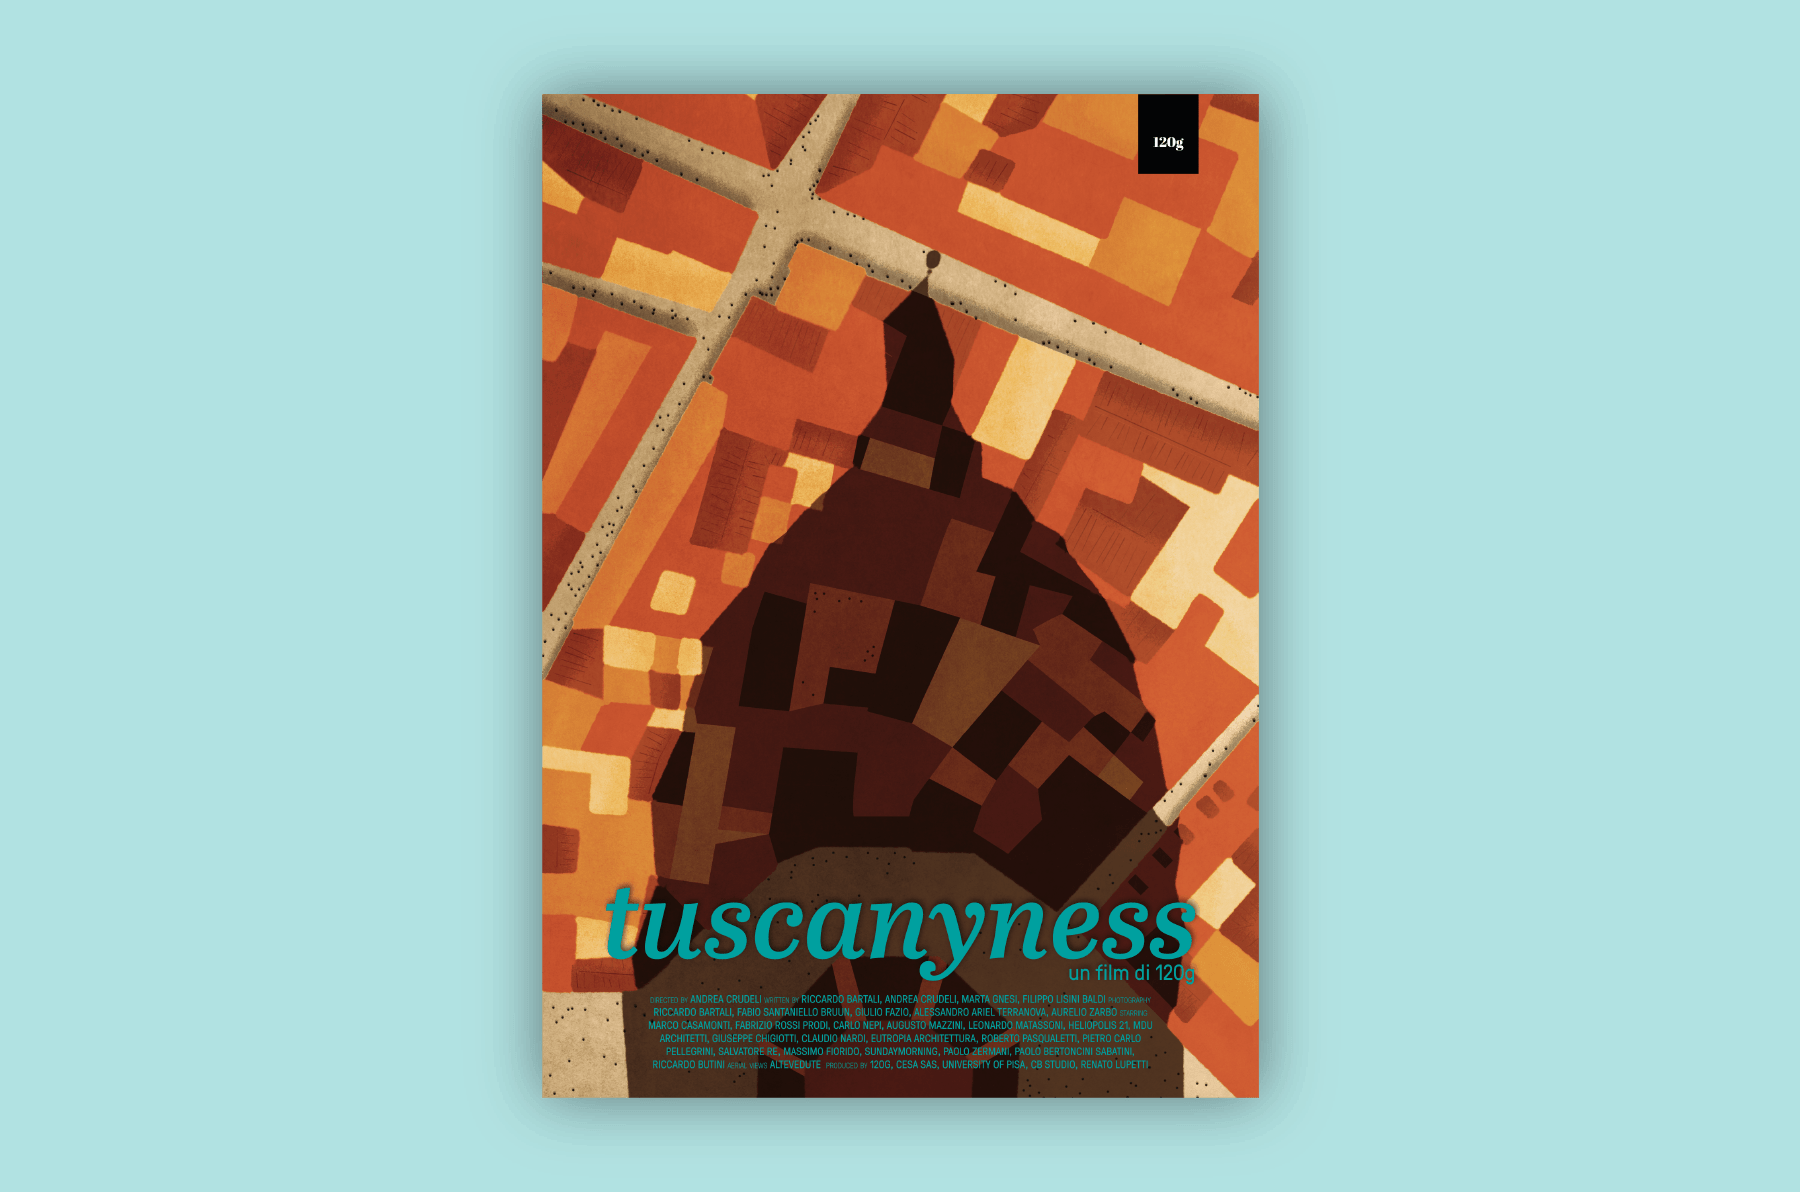 Tuscanyness the movie